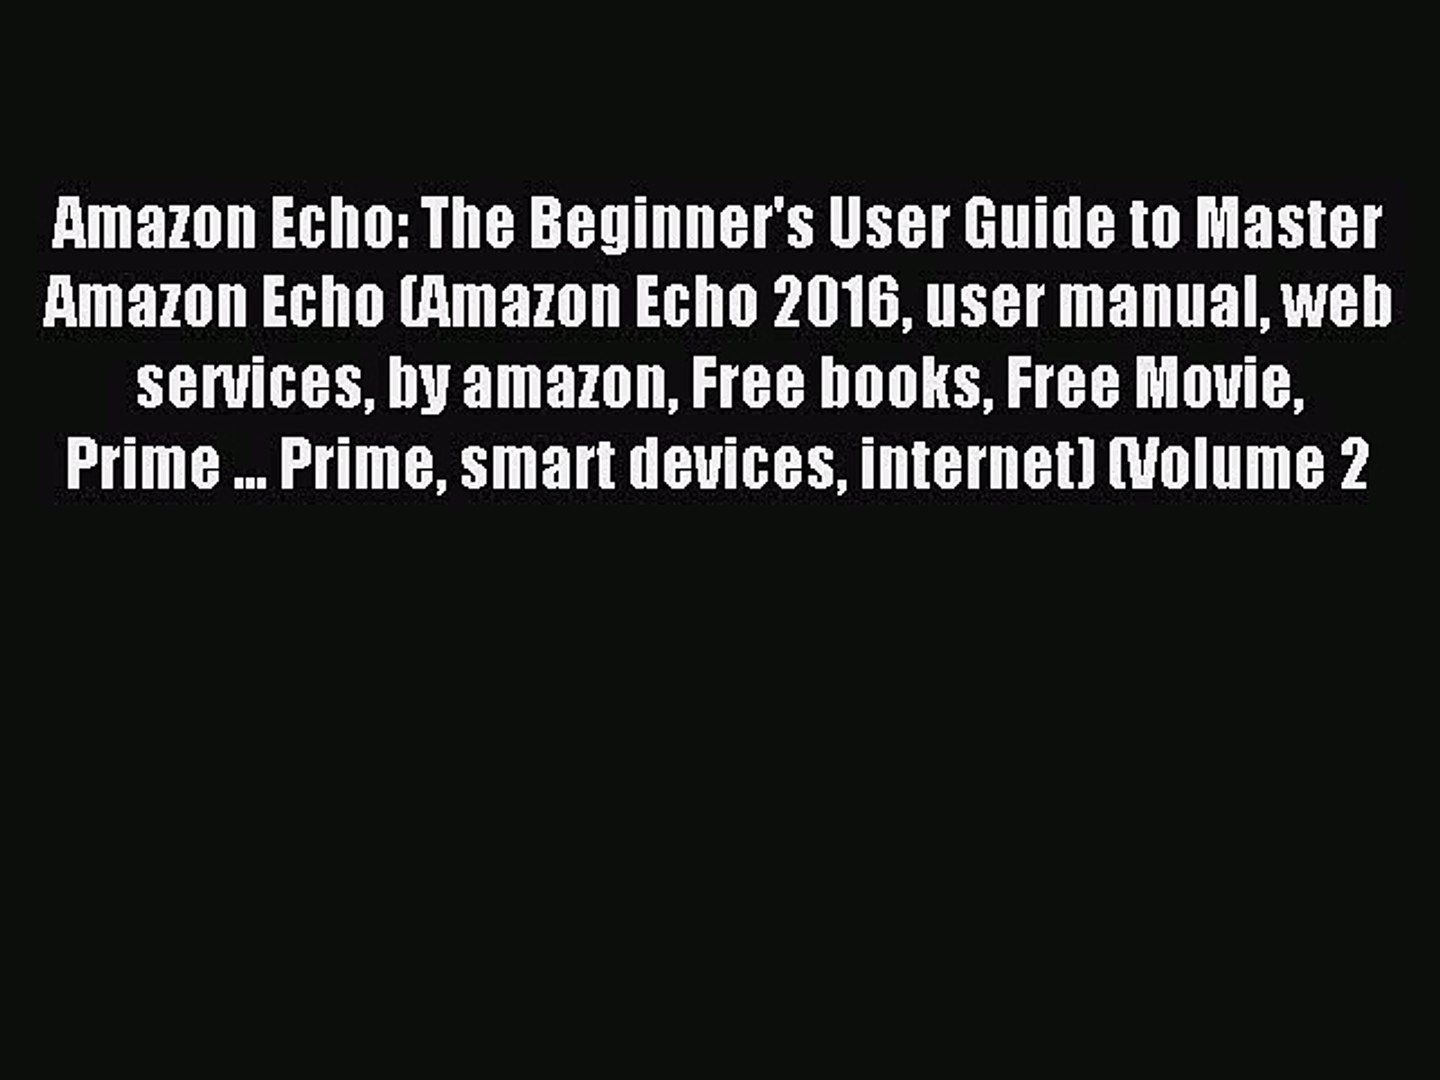 Read Amazon Echo: The Beginner's User Guide to Master Amazon Echo (Amazon Echo 2016 user manual